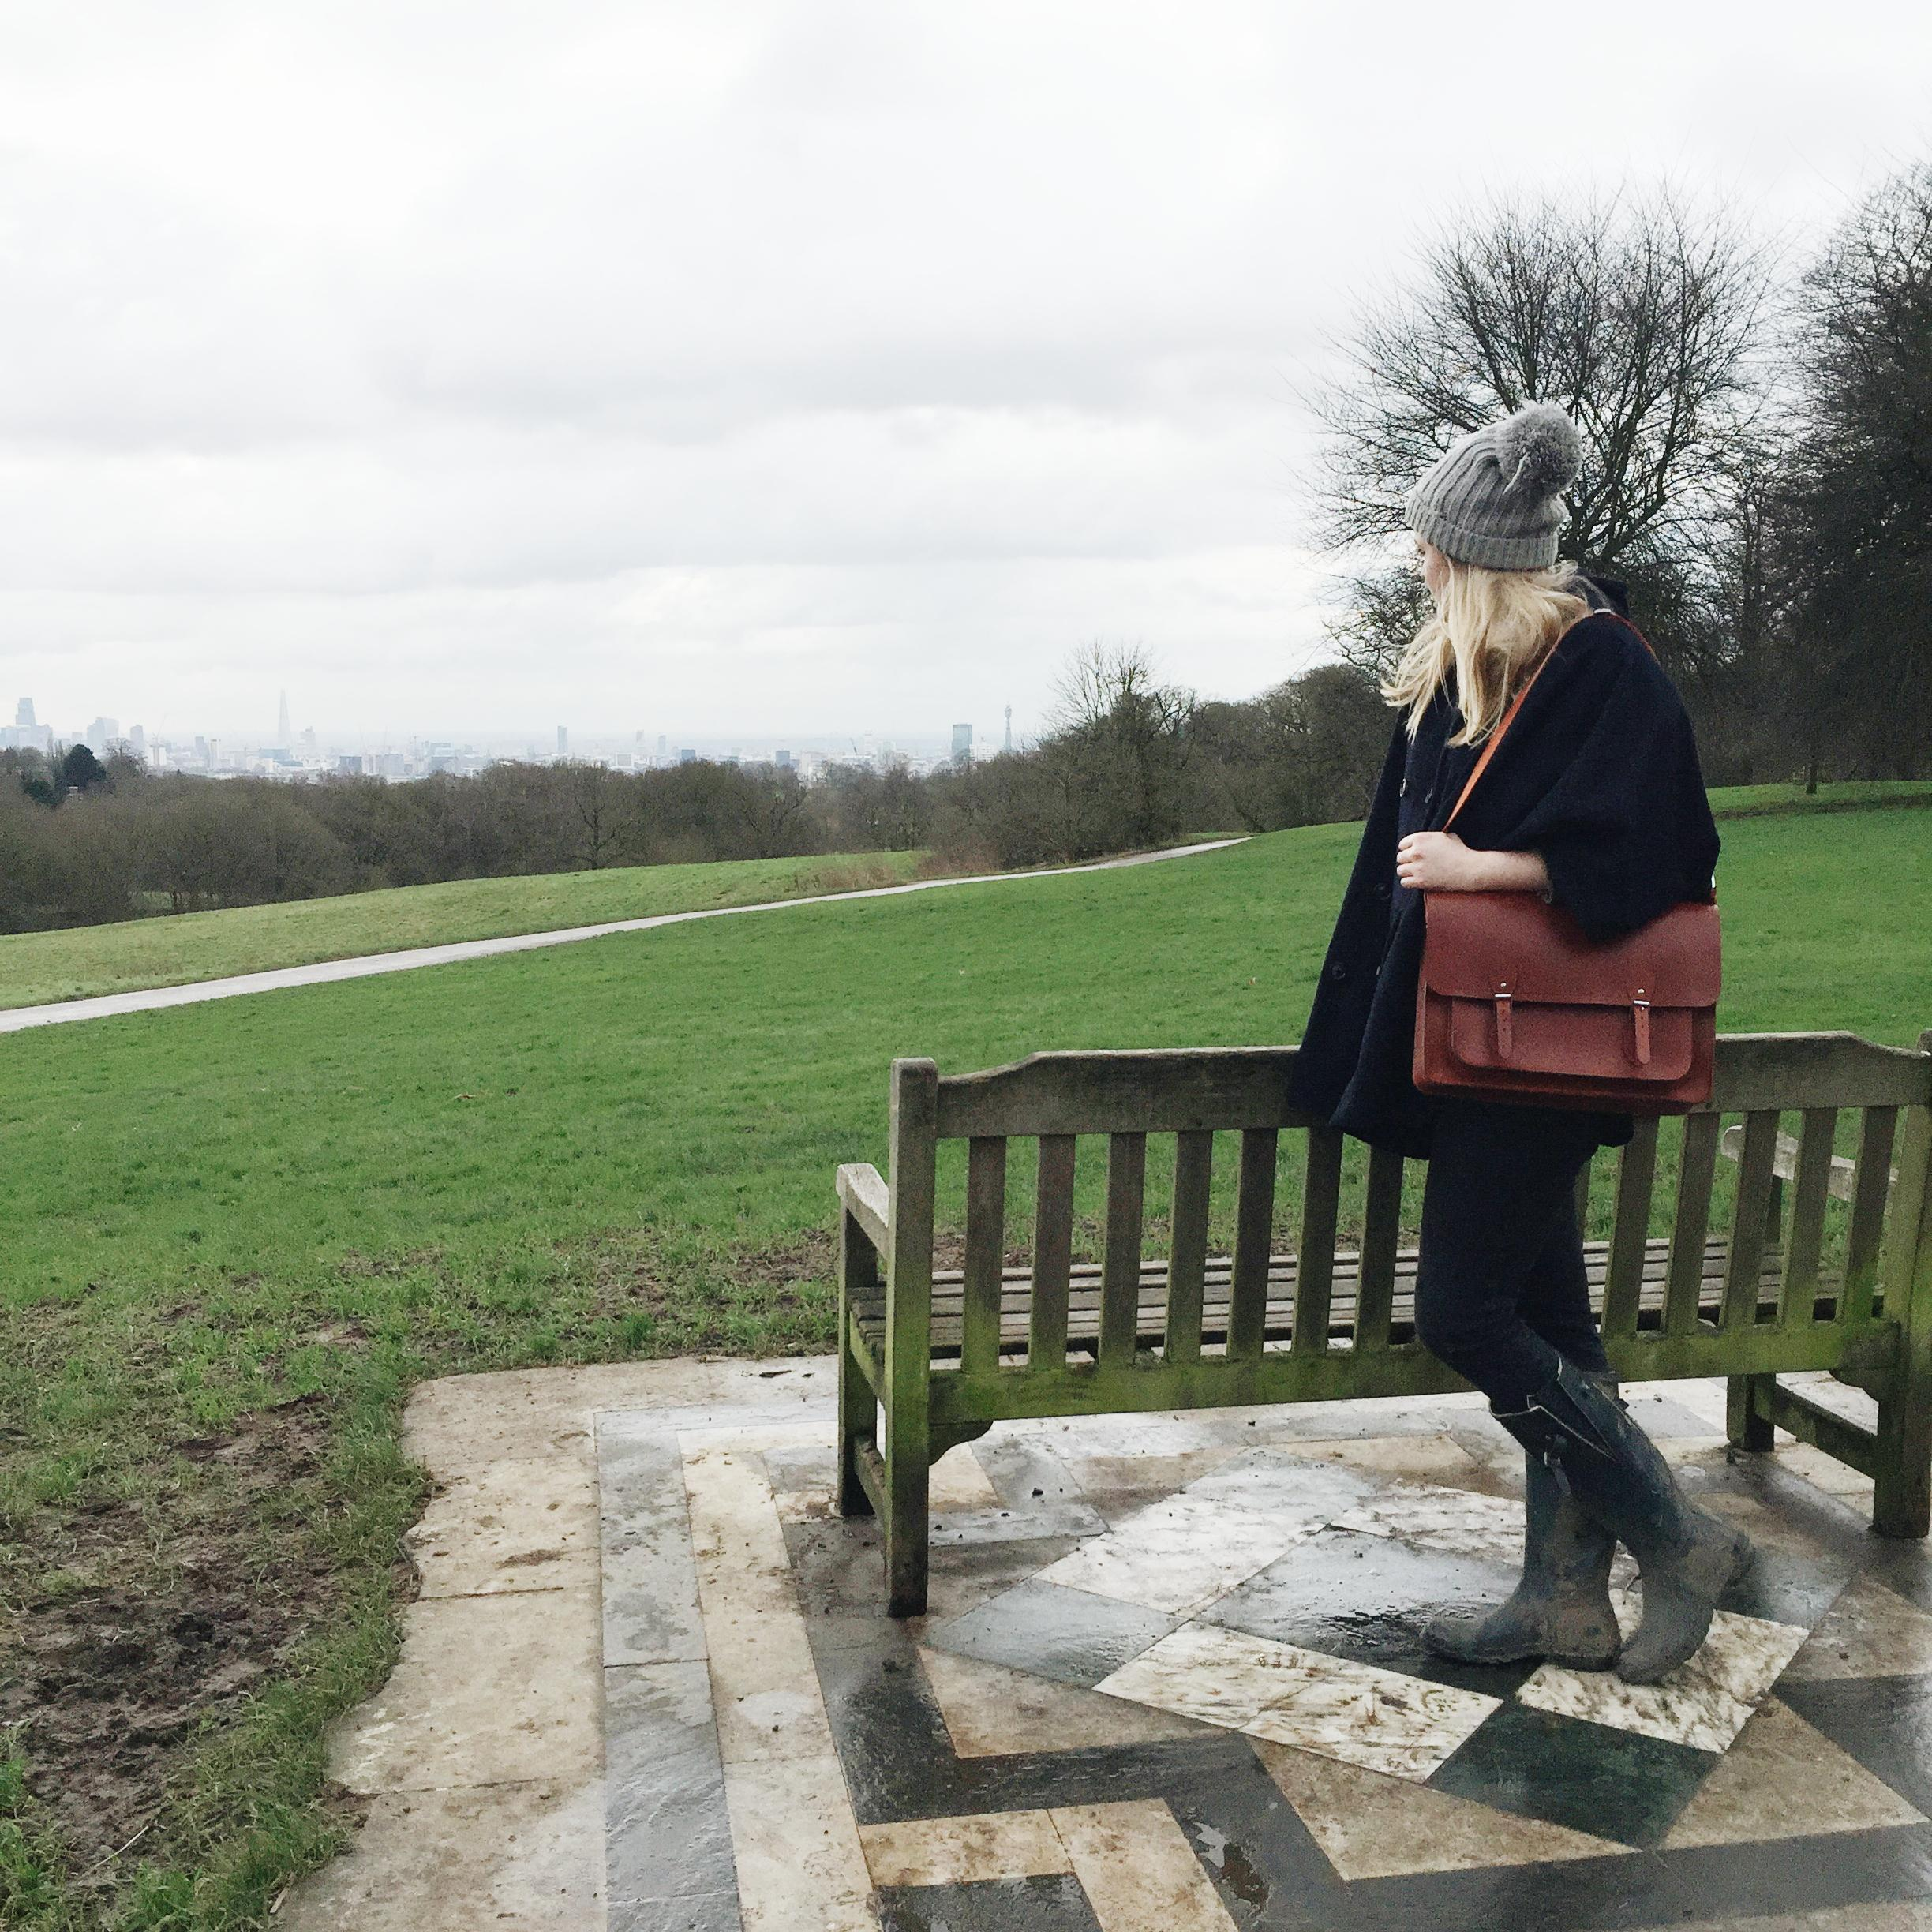 Cambridge Satchel - Why A Girl Only Needs One Bag